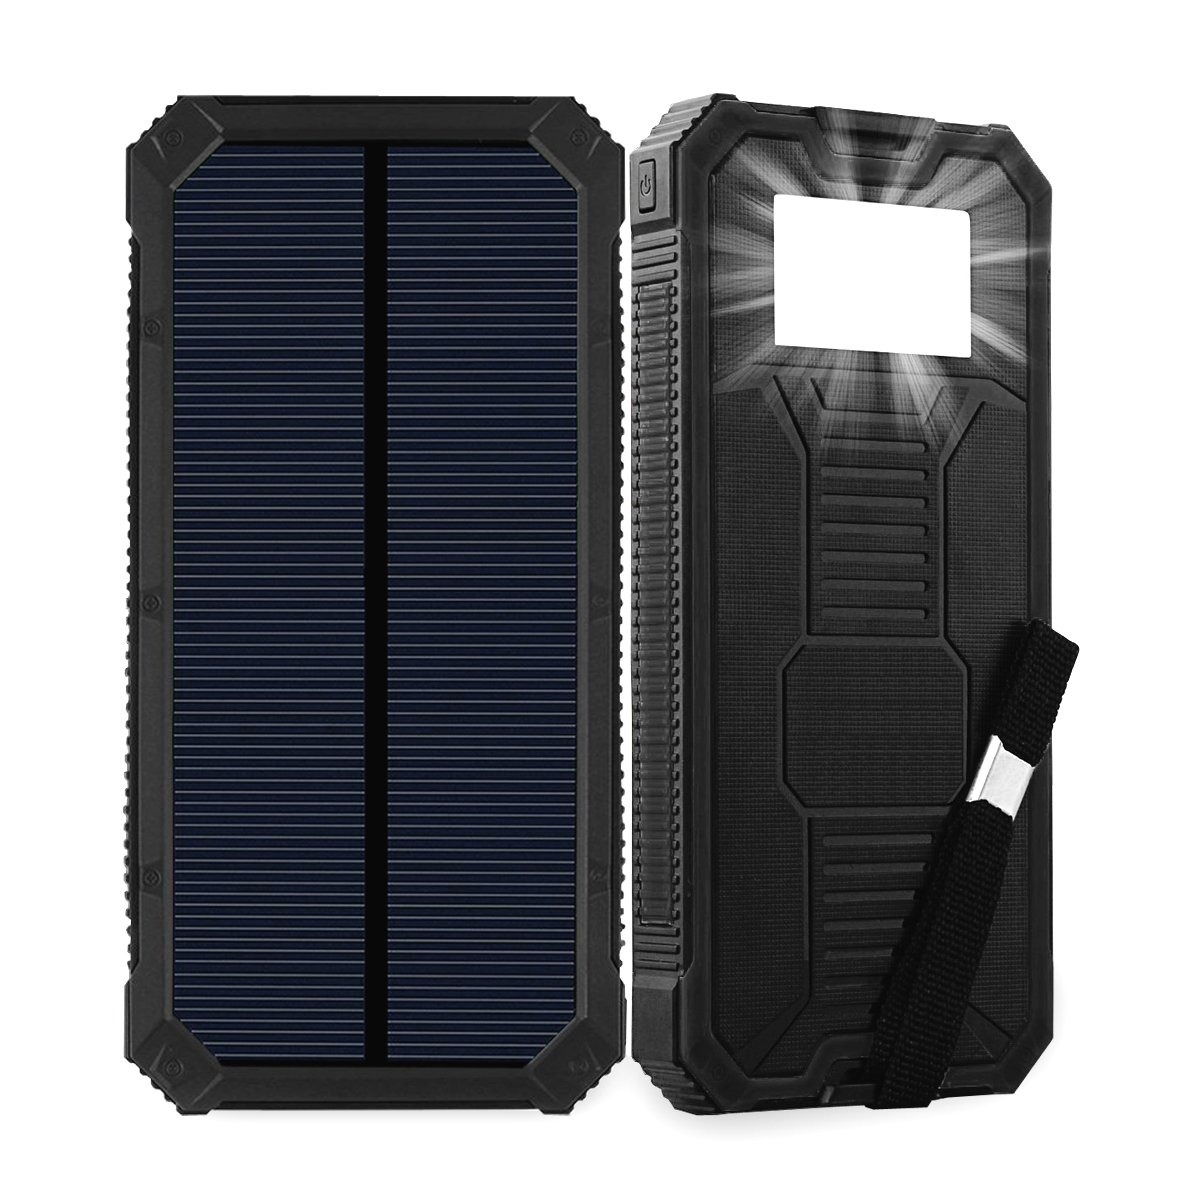 Solar Power Bank 15000mAh Friengood Portable Solar Phone Charger with Dual USB Ports, Solar External Battery Charger with 6 LED Flashlight for Cell Phone, Tablet, Camera and More (Black)